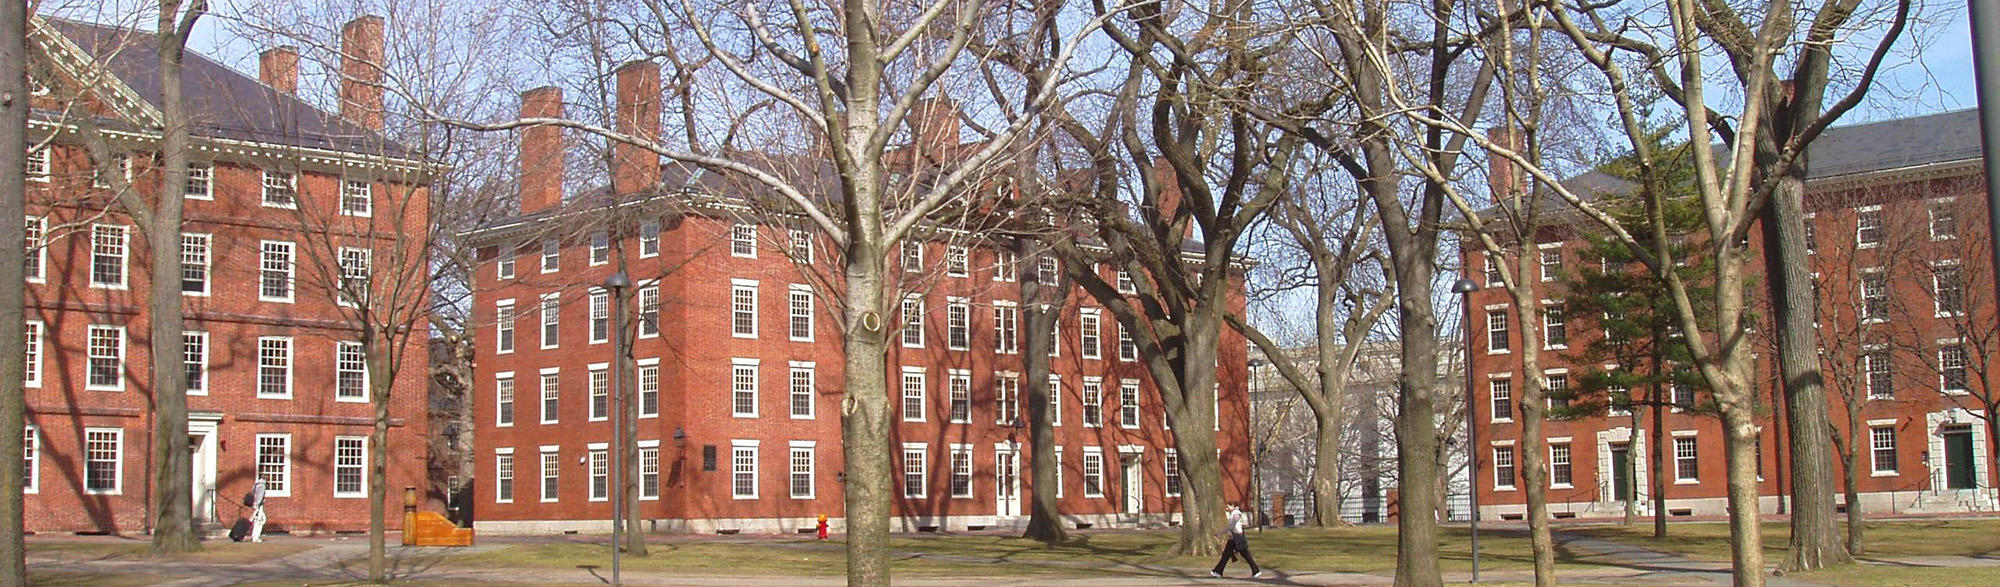 Harvard Yard dorms and leafless trees